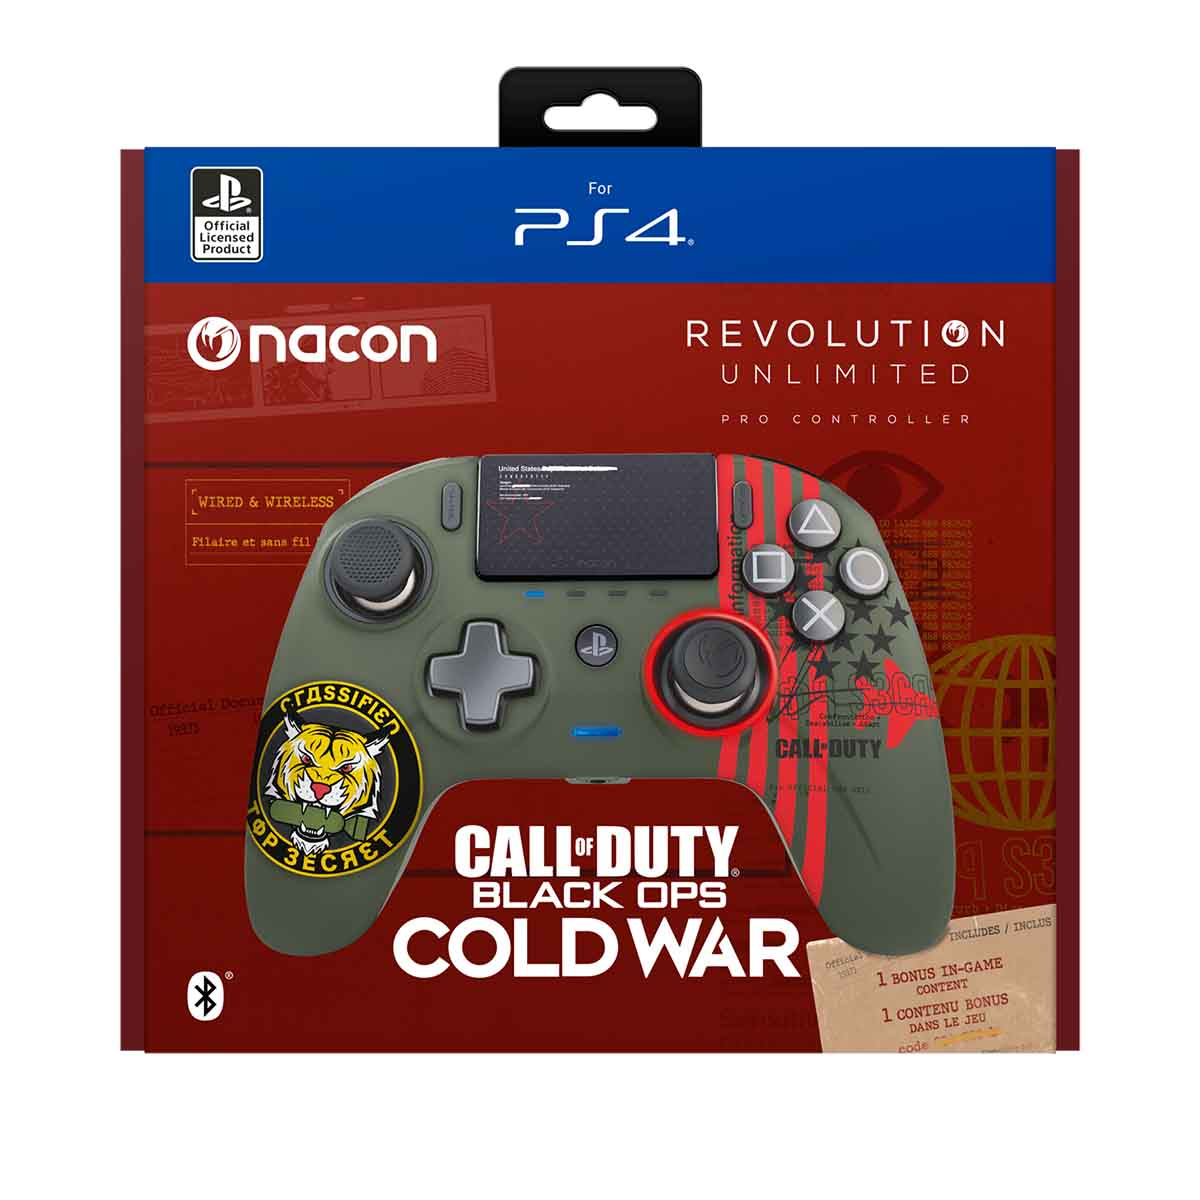 Revolution Unlimited Pro Controller Call Of Duty: Black Ops Cold War